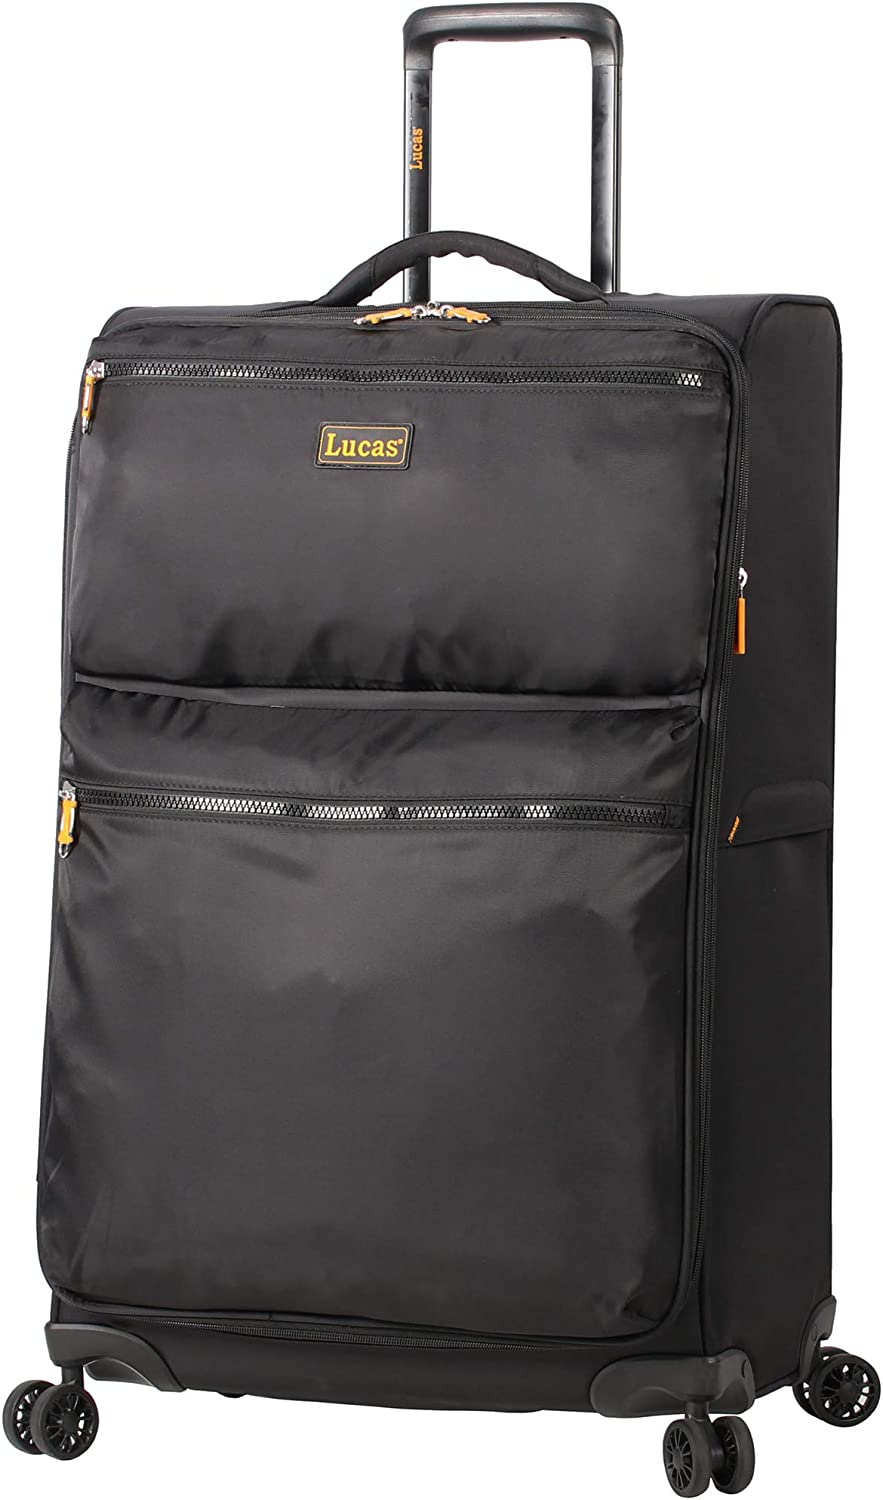 Lucas Designer Luggage Collection – Expandable 24 Inch Softside Bag – Durable Mid-sized Ultra Lightweight Checked Suitcase with 8-Rolling Spinner Wheels Black